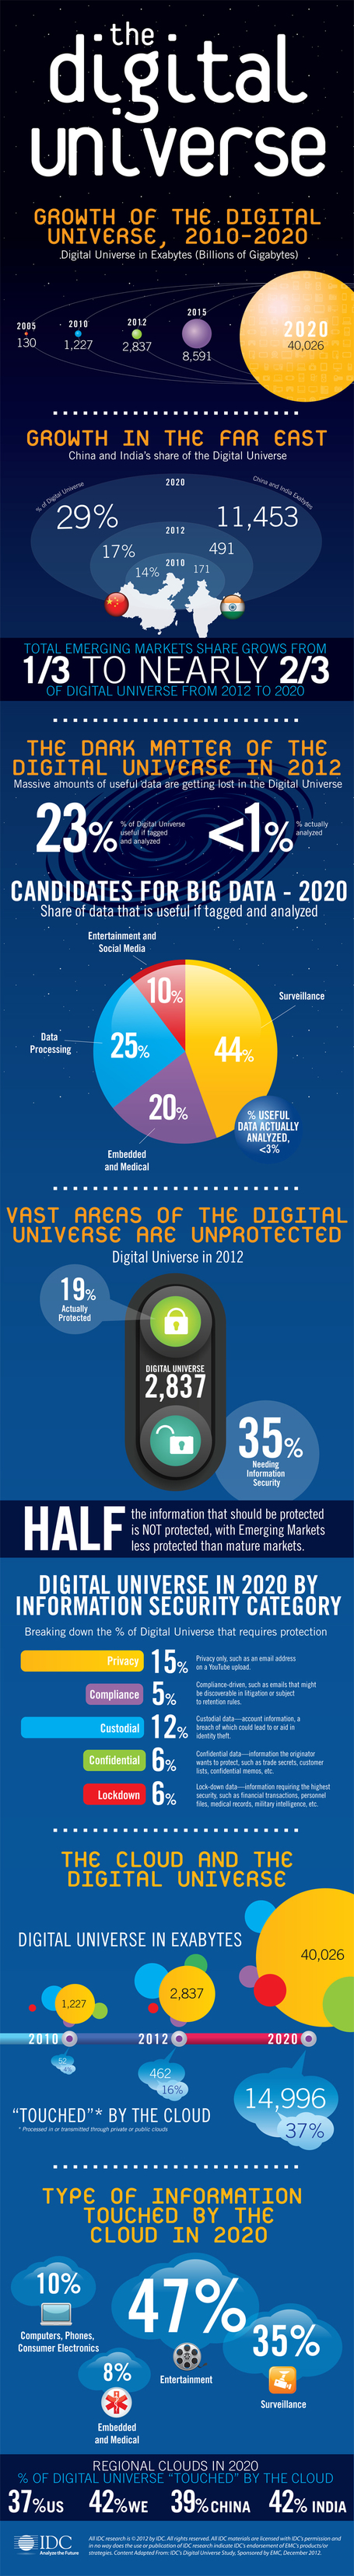 Cloud Infographic – Big Data Universe | cross pond high tech | Scoop.it